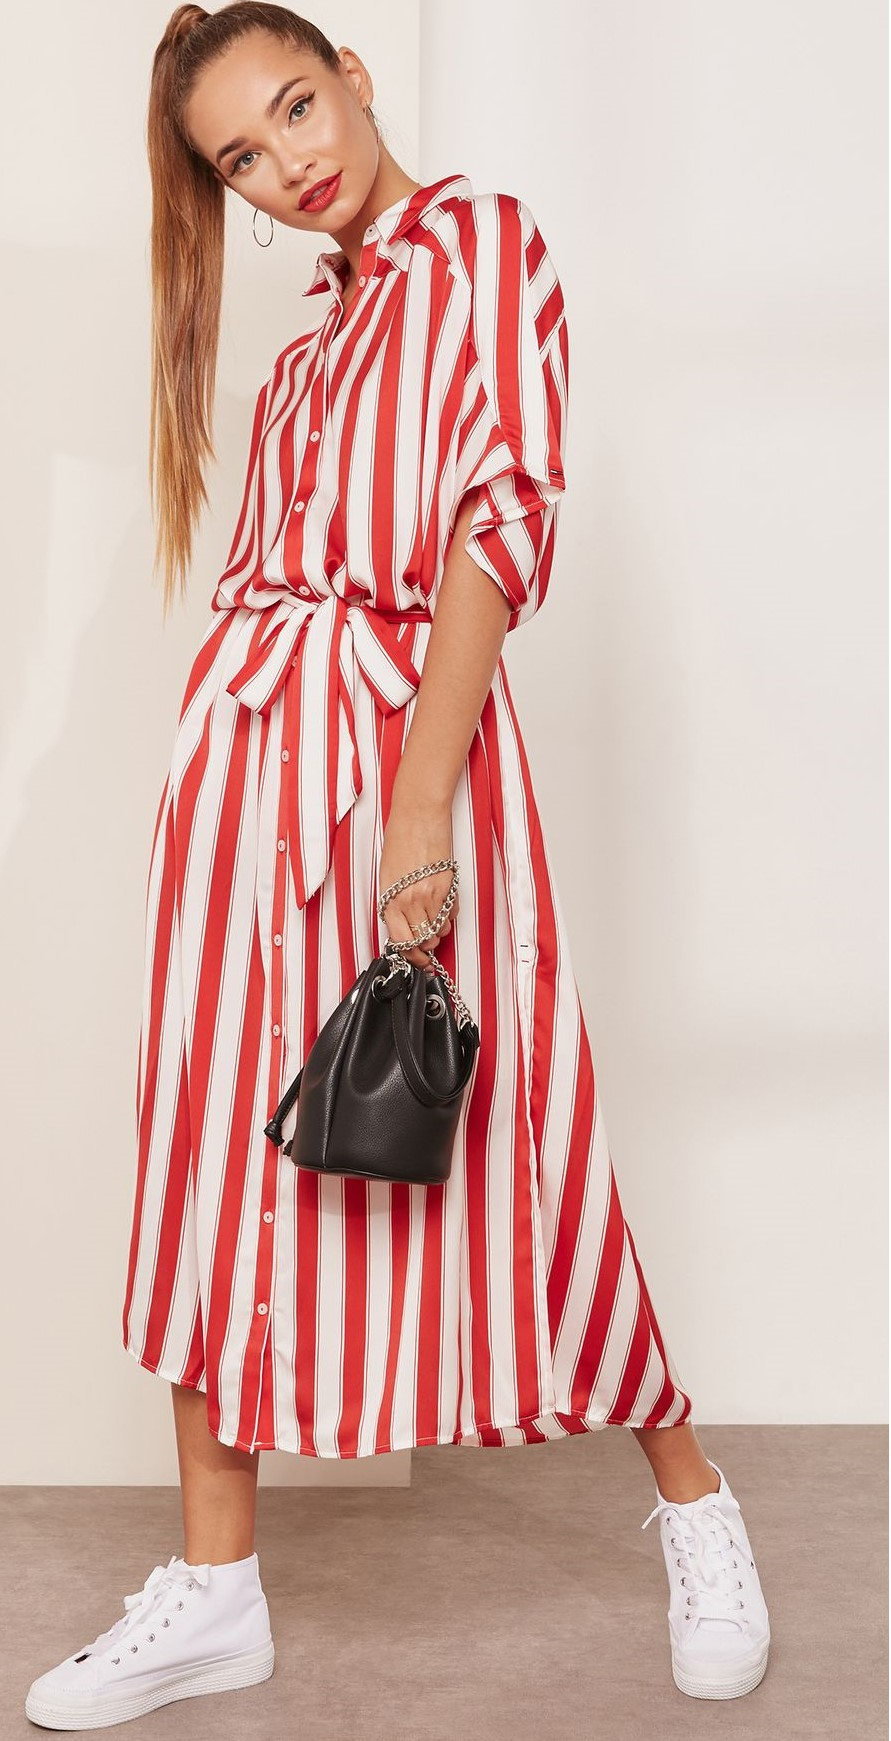 red dress white shoes Cherry red shirt dresses | HOWTOWEAR Fashion